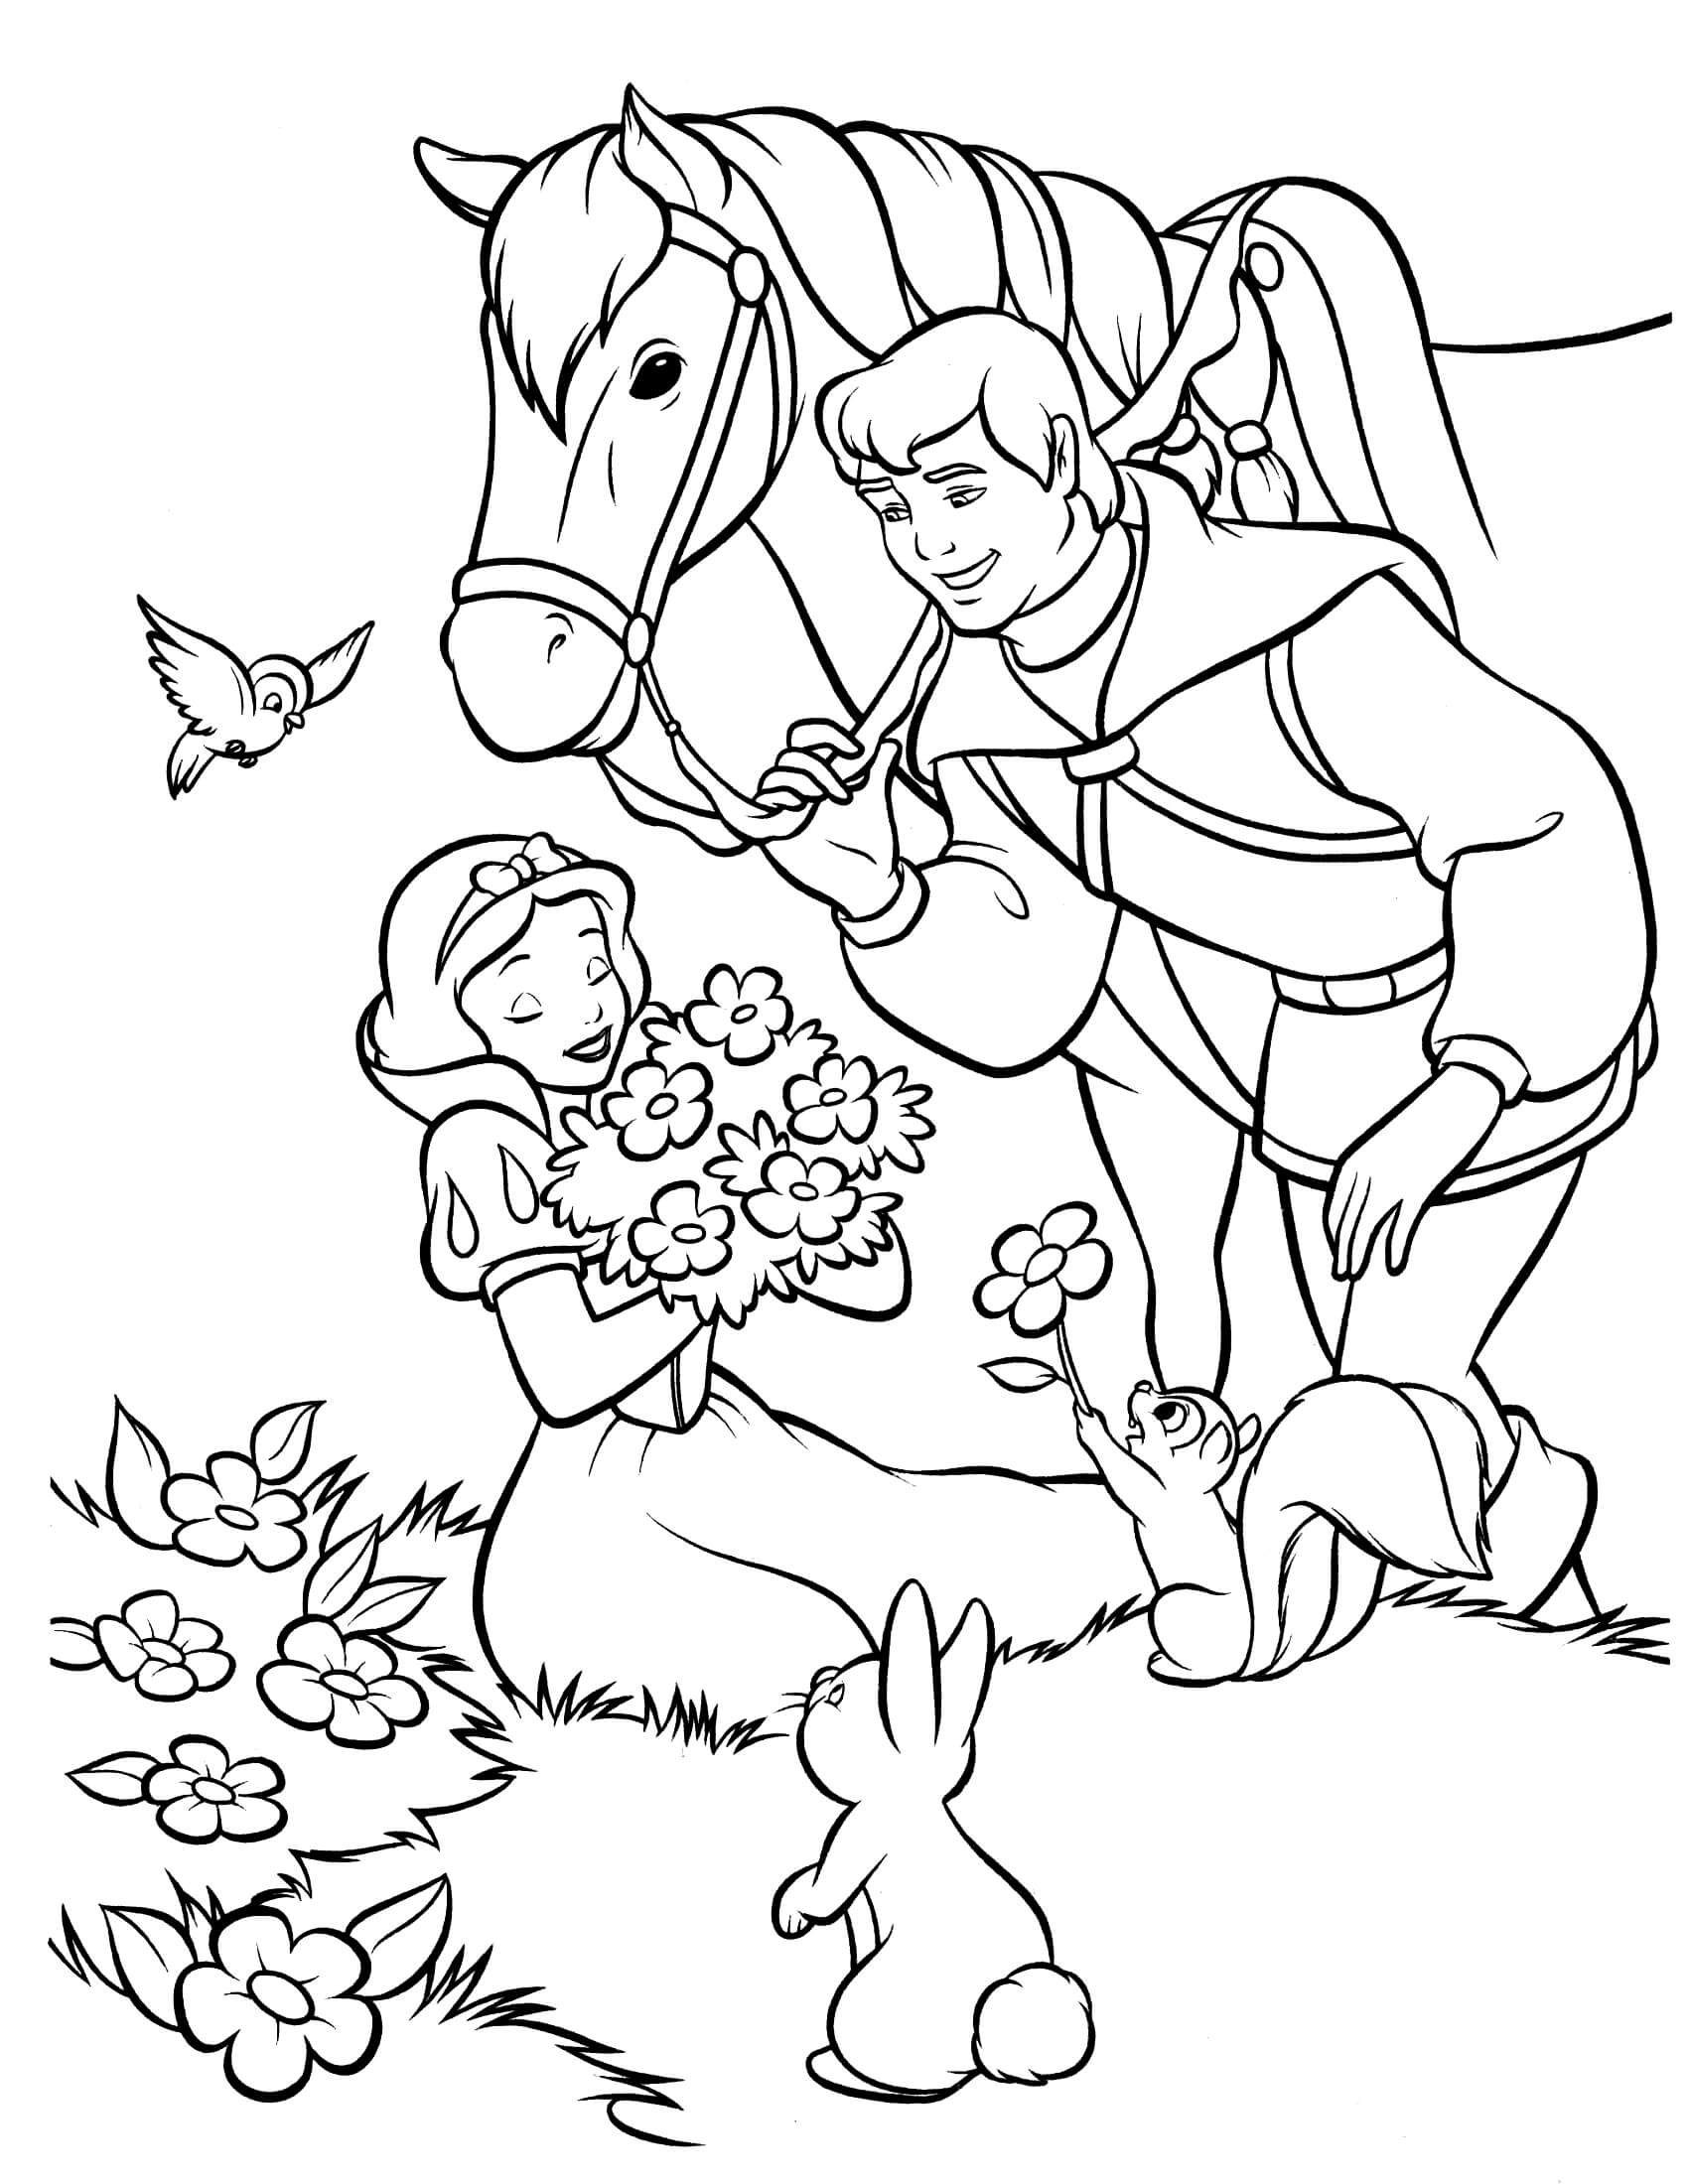 snow coloring pages free - photo#12